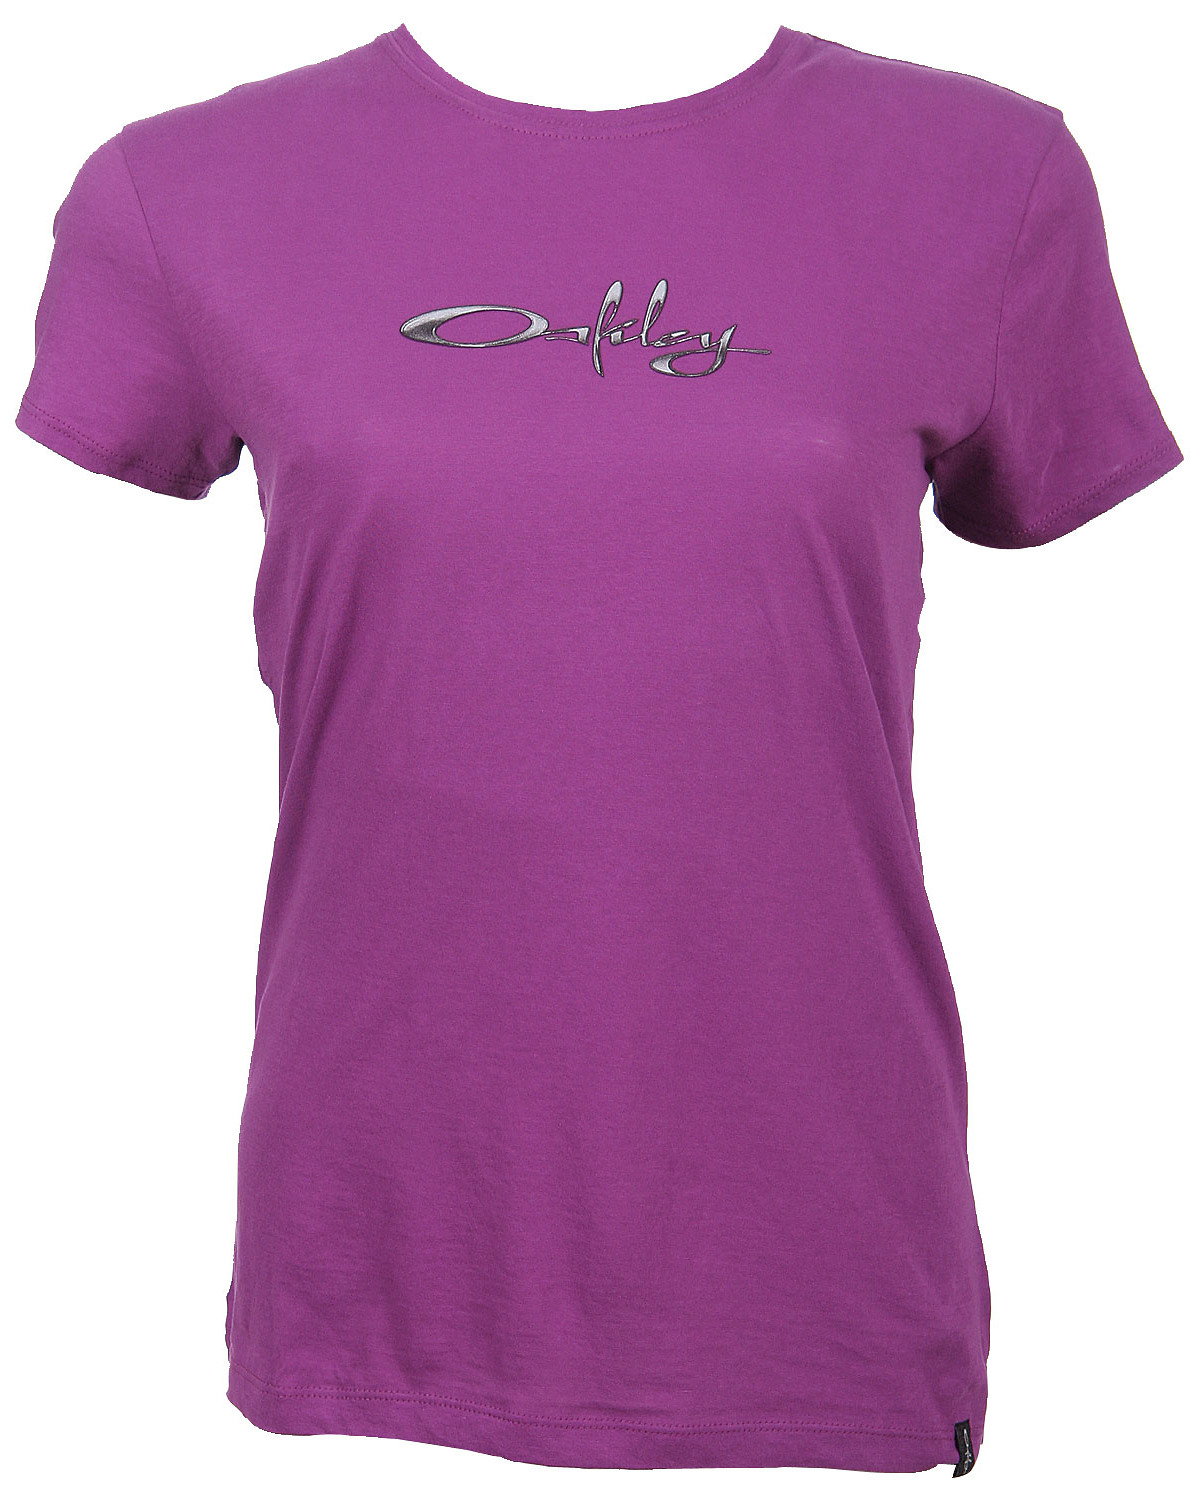 Oakley Chrome Logo T-Shirt Sparkling Grape  oak-chrmlgo-spkgp-w-07.jpg